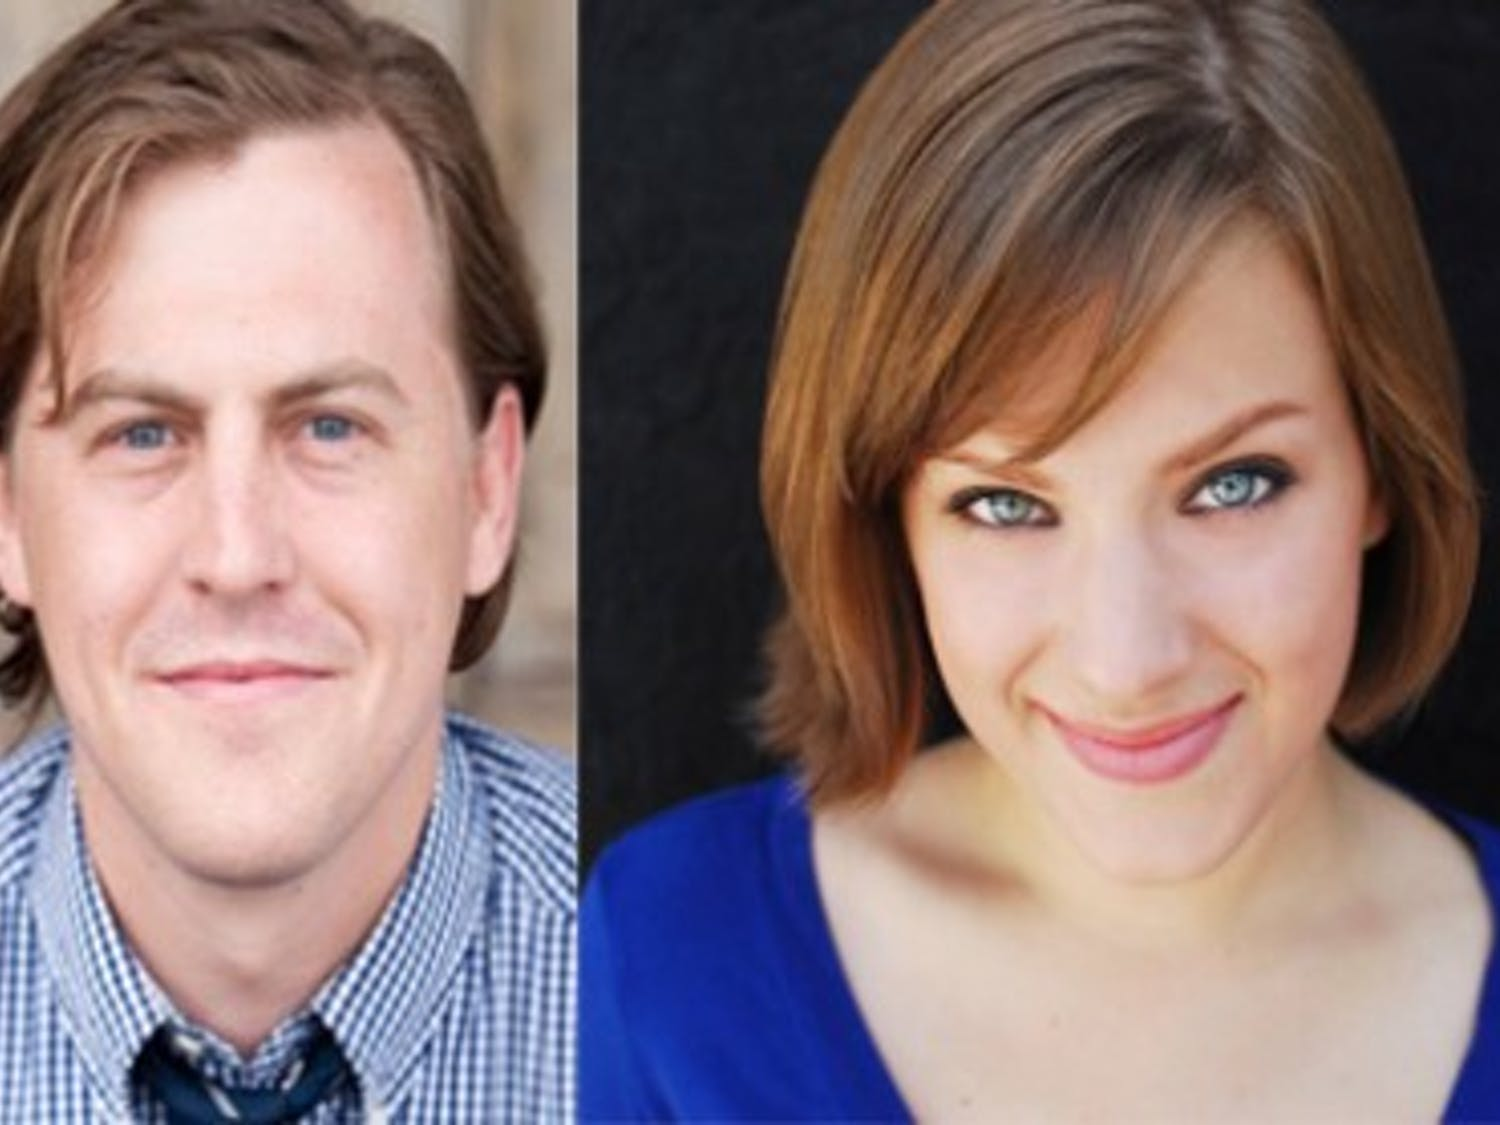 Ronald Funches, Alex Moffat, Anna Drezden, Streeter Seidell will be performers at this year's SA Comedy Series on March 30.